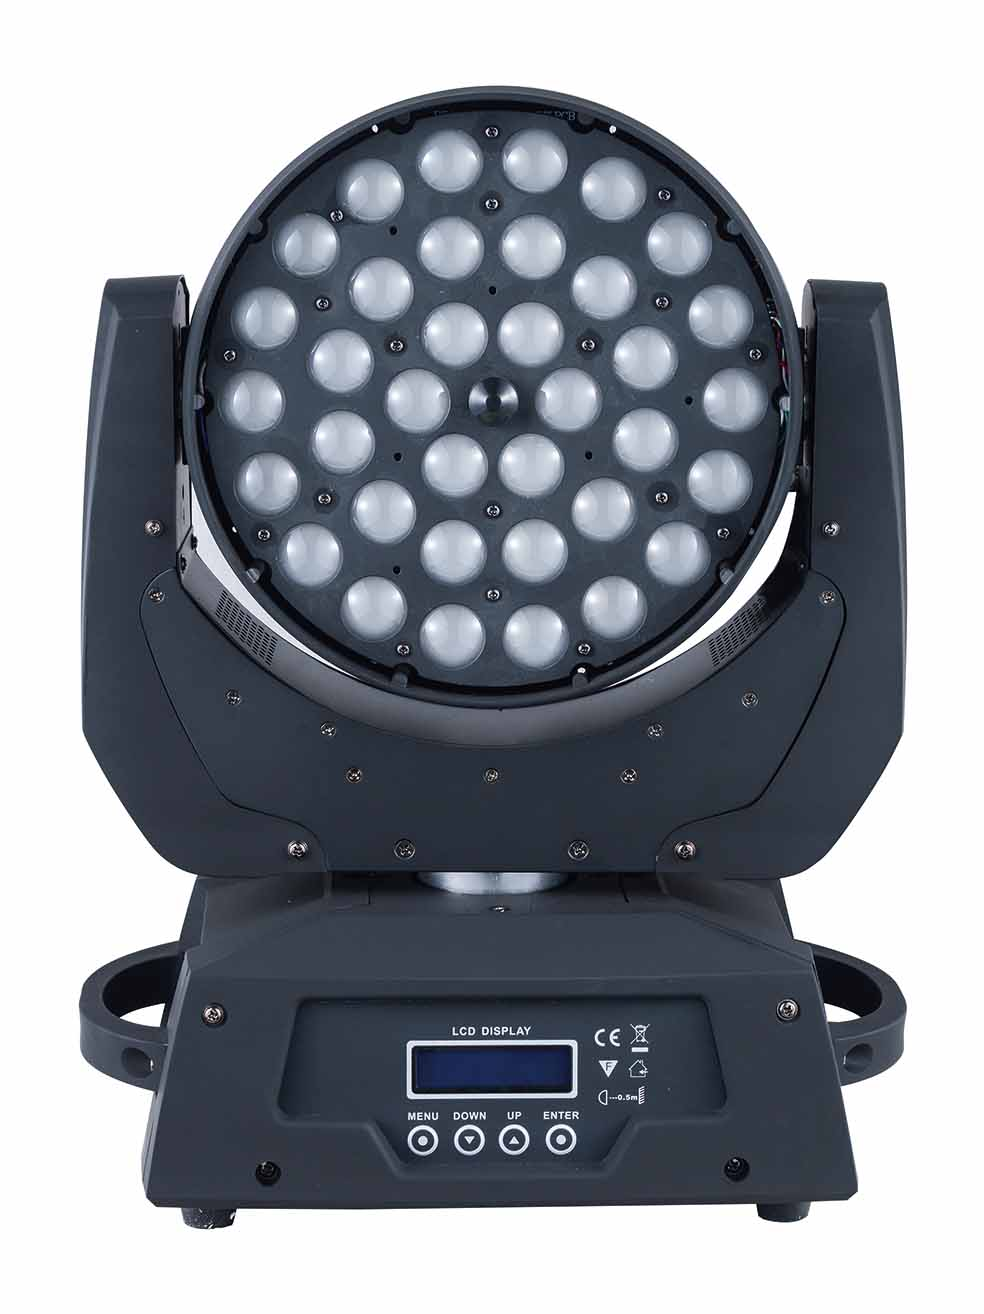 4pcs/lot high power led wash light 36*18W 6 in 1 RGBWY+UV led moving head zoom light with flight case